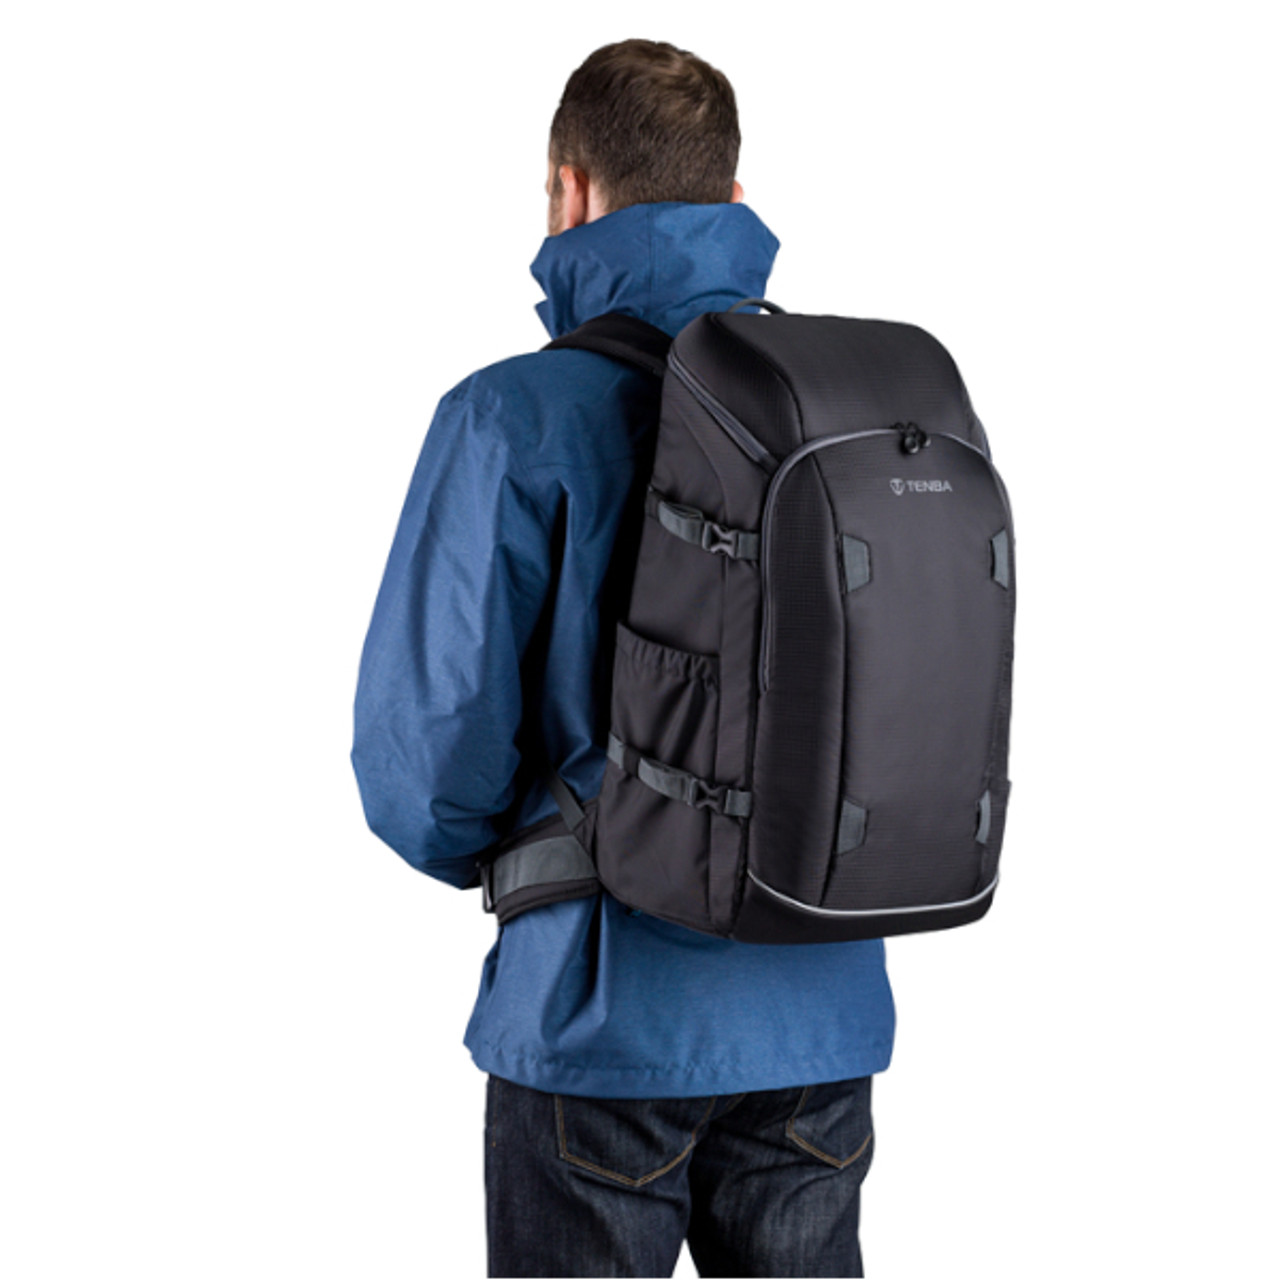 Tenba Solstice Backpack 24L Black